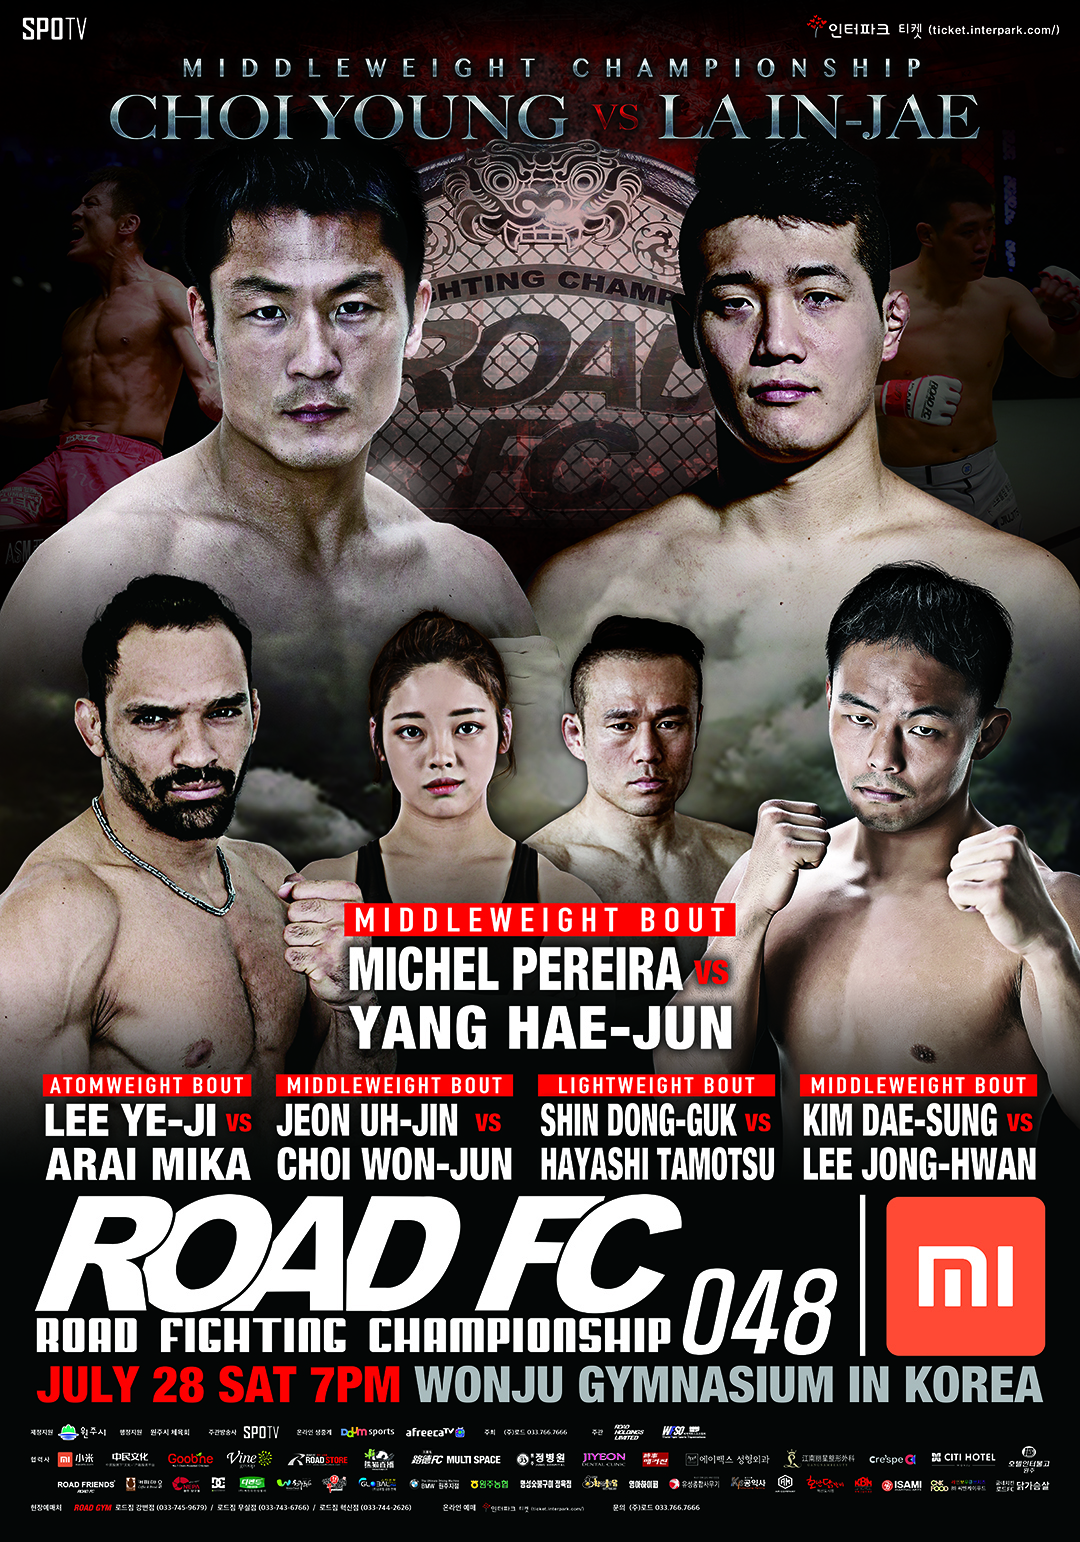 ROAD FC 048 FINAL MAIN CARD LINE UP AND BROADCAST -  ROAD FC 048